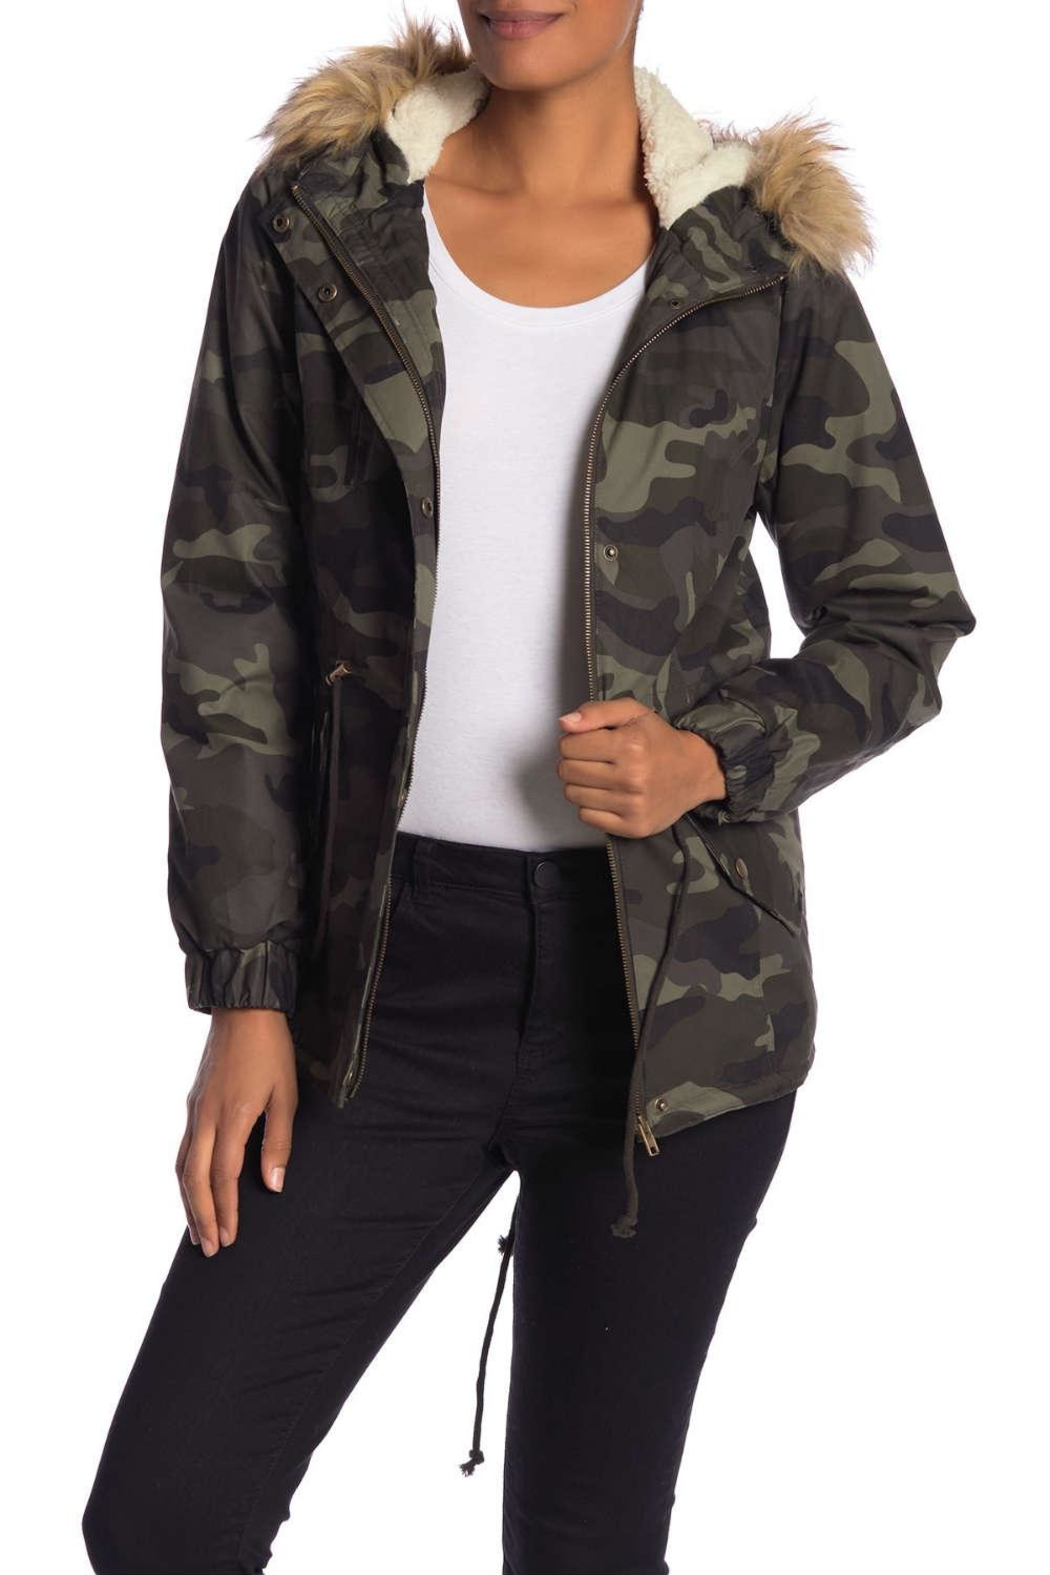 ed686d283 Papillon Camo Sherpa Jacket from Saratoga by Laura M — Shoptiques